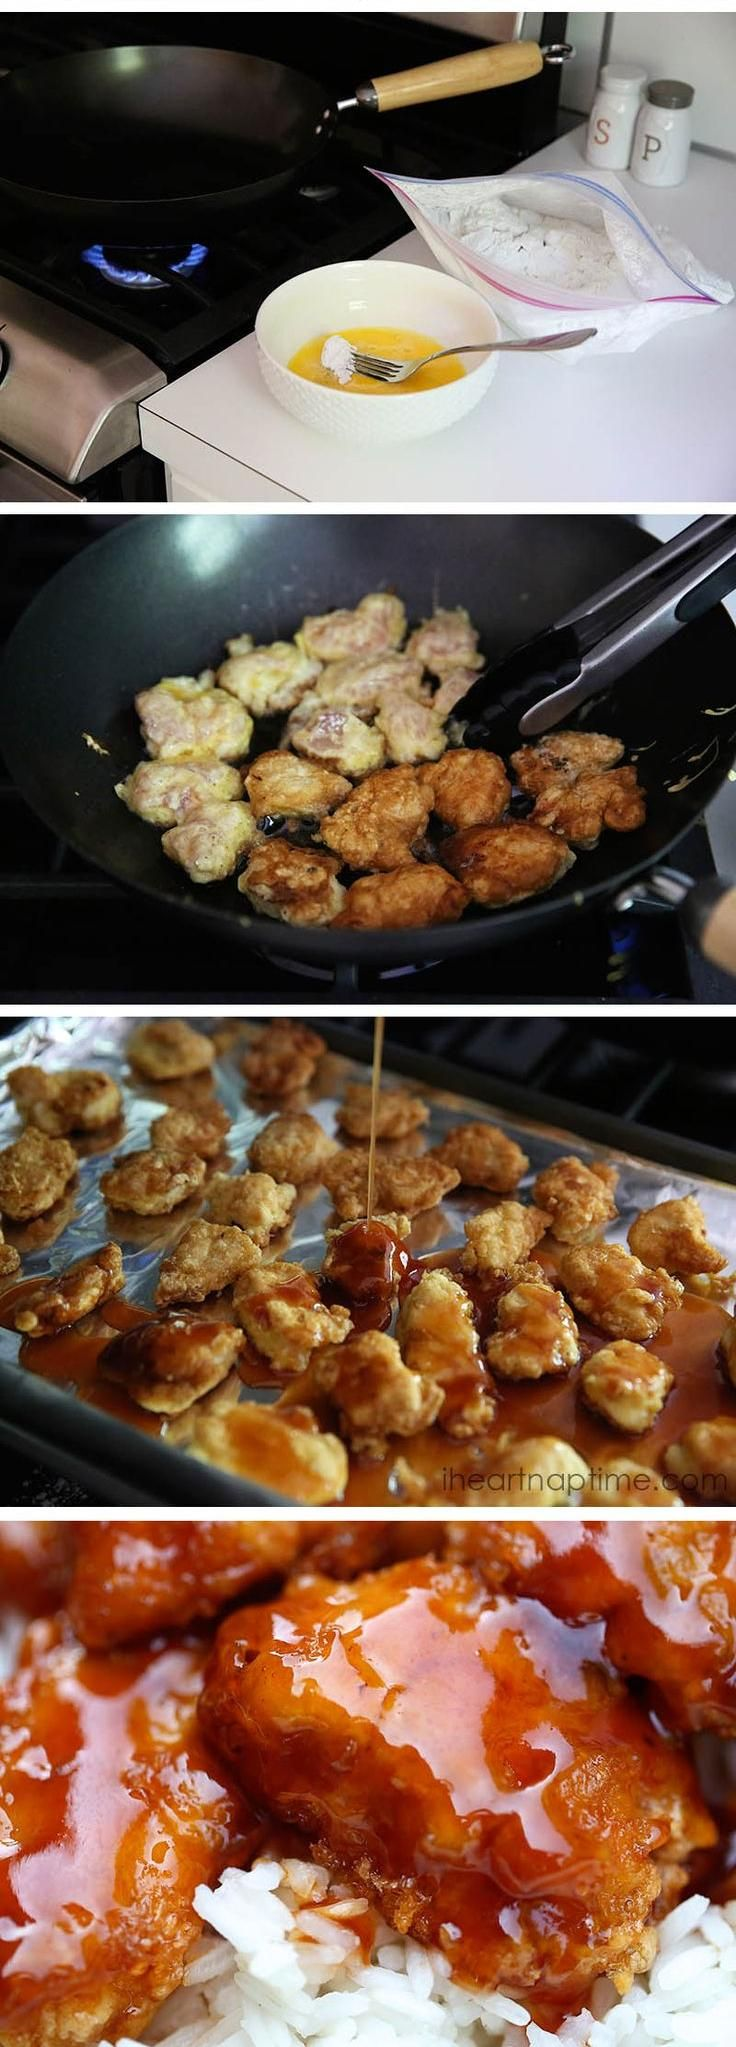 Sweet and sour chicken recipe {Emily note: this tasted almost exactly what you would order from Chinese take out!! The only change I will make next time is just whipping up extra sweet and sour sauce, which would be easy to do!}